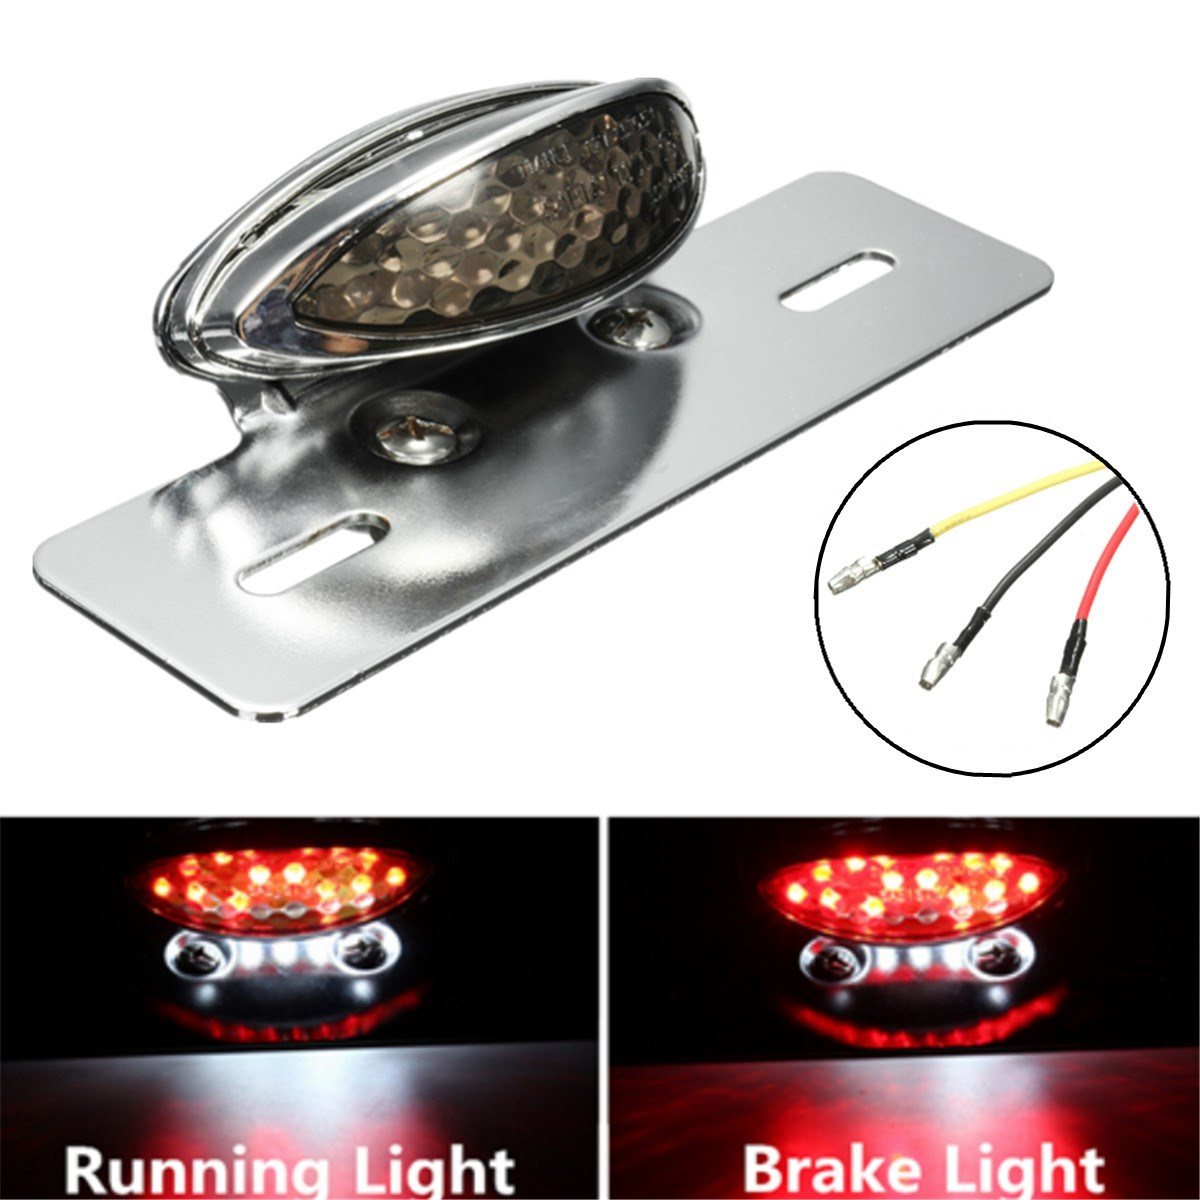 Universal Motorcycle LED Tail Stop Brake Light License Plate Lamp For Harley Bobber Chopper Cafe Racer For Yamaha 12v led universal motorcycle tail brake light license plate lamp rear stop lamp for harley davidson for honda for suzuki